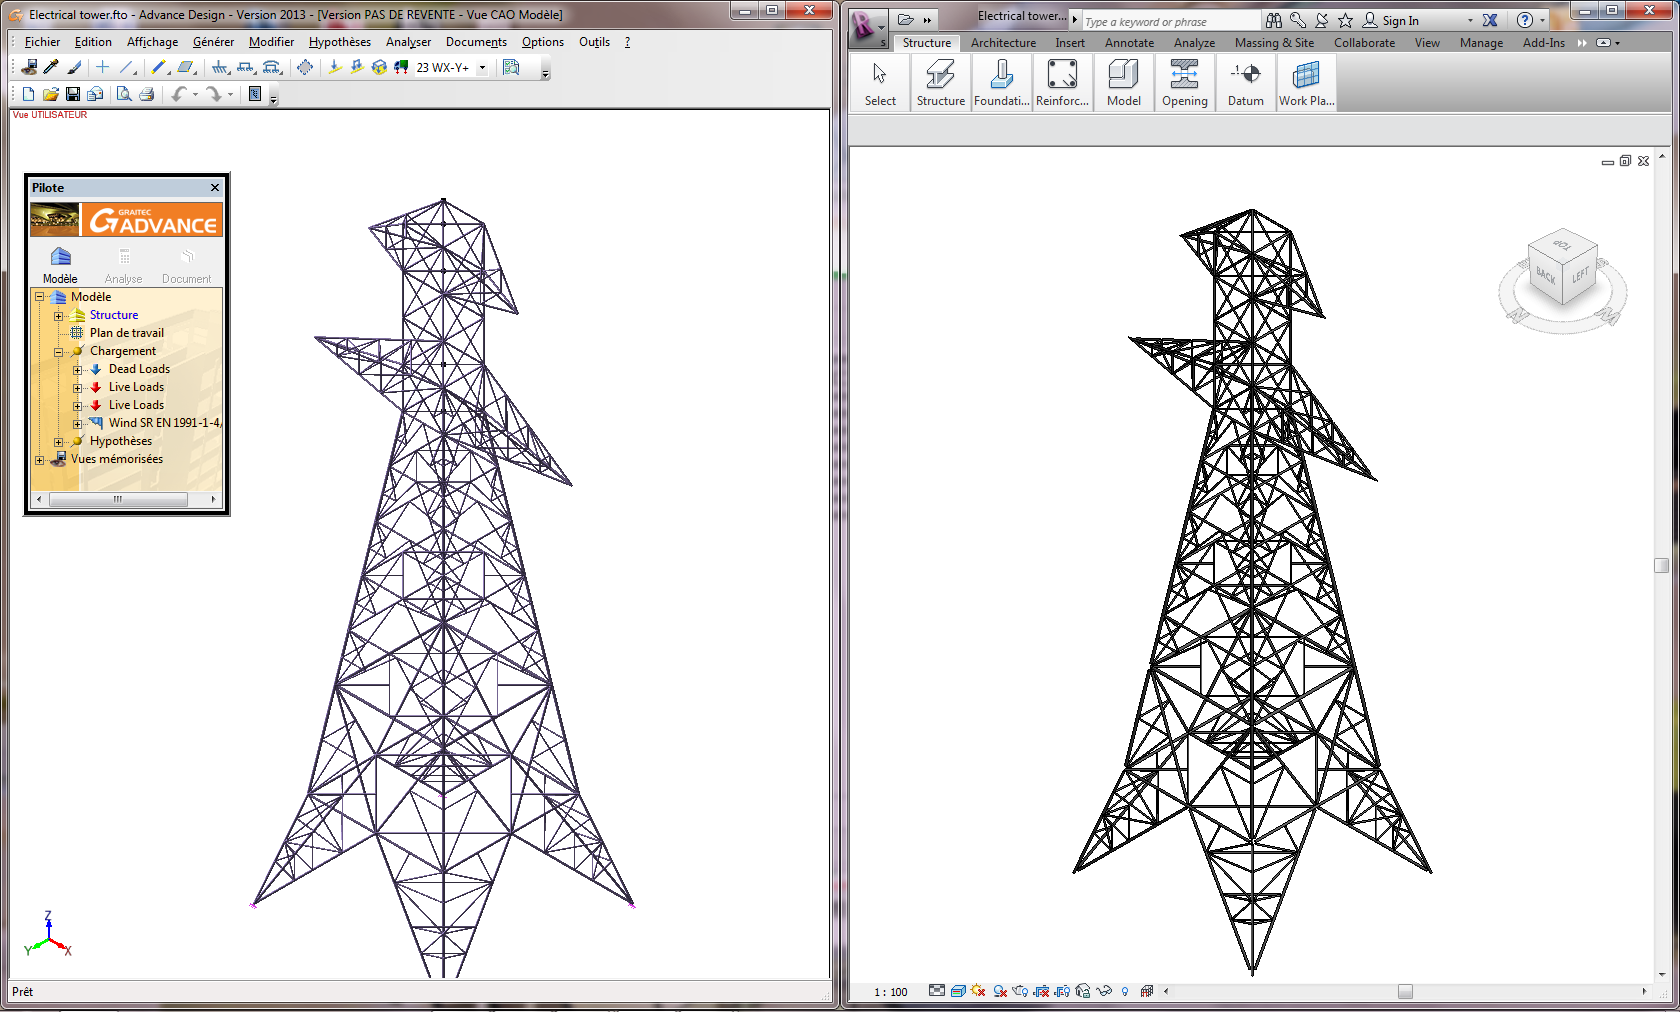 AD-Revit Electrical tower